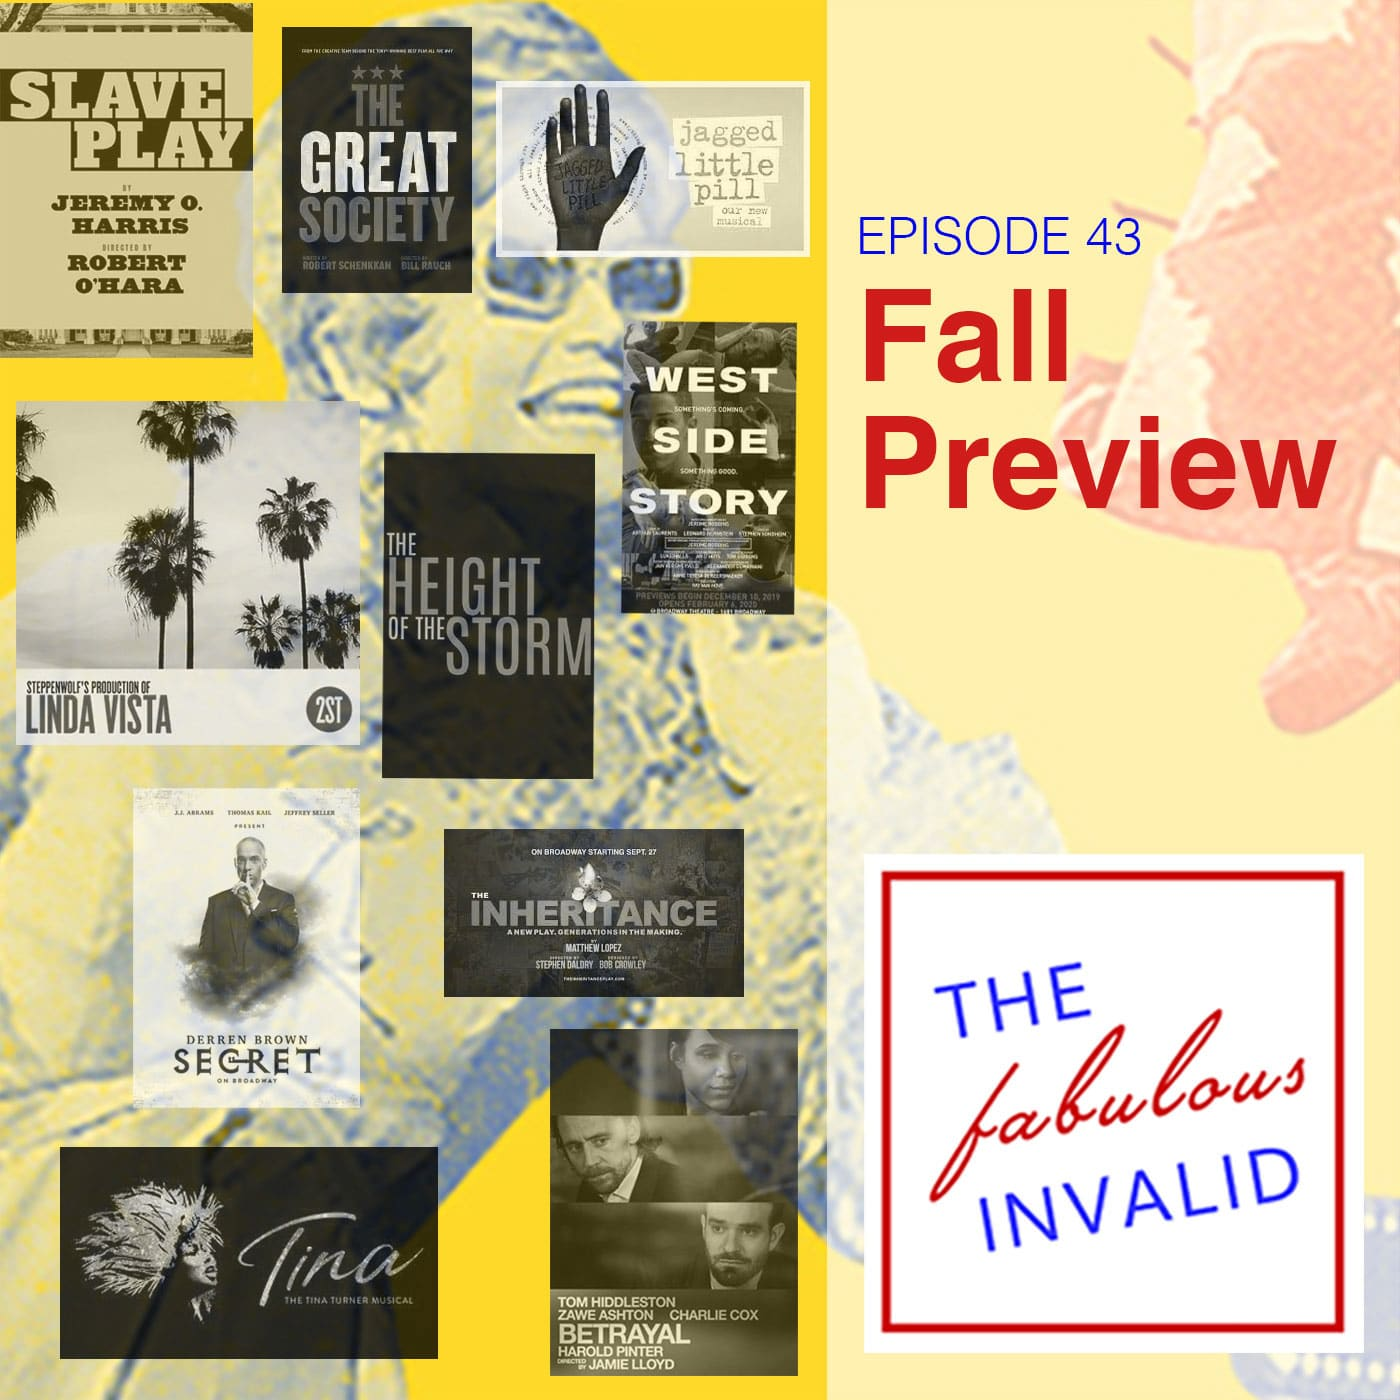 The Fabulous Invalid Ep 43 Fall Preview